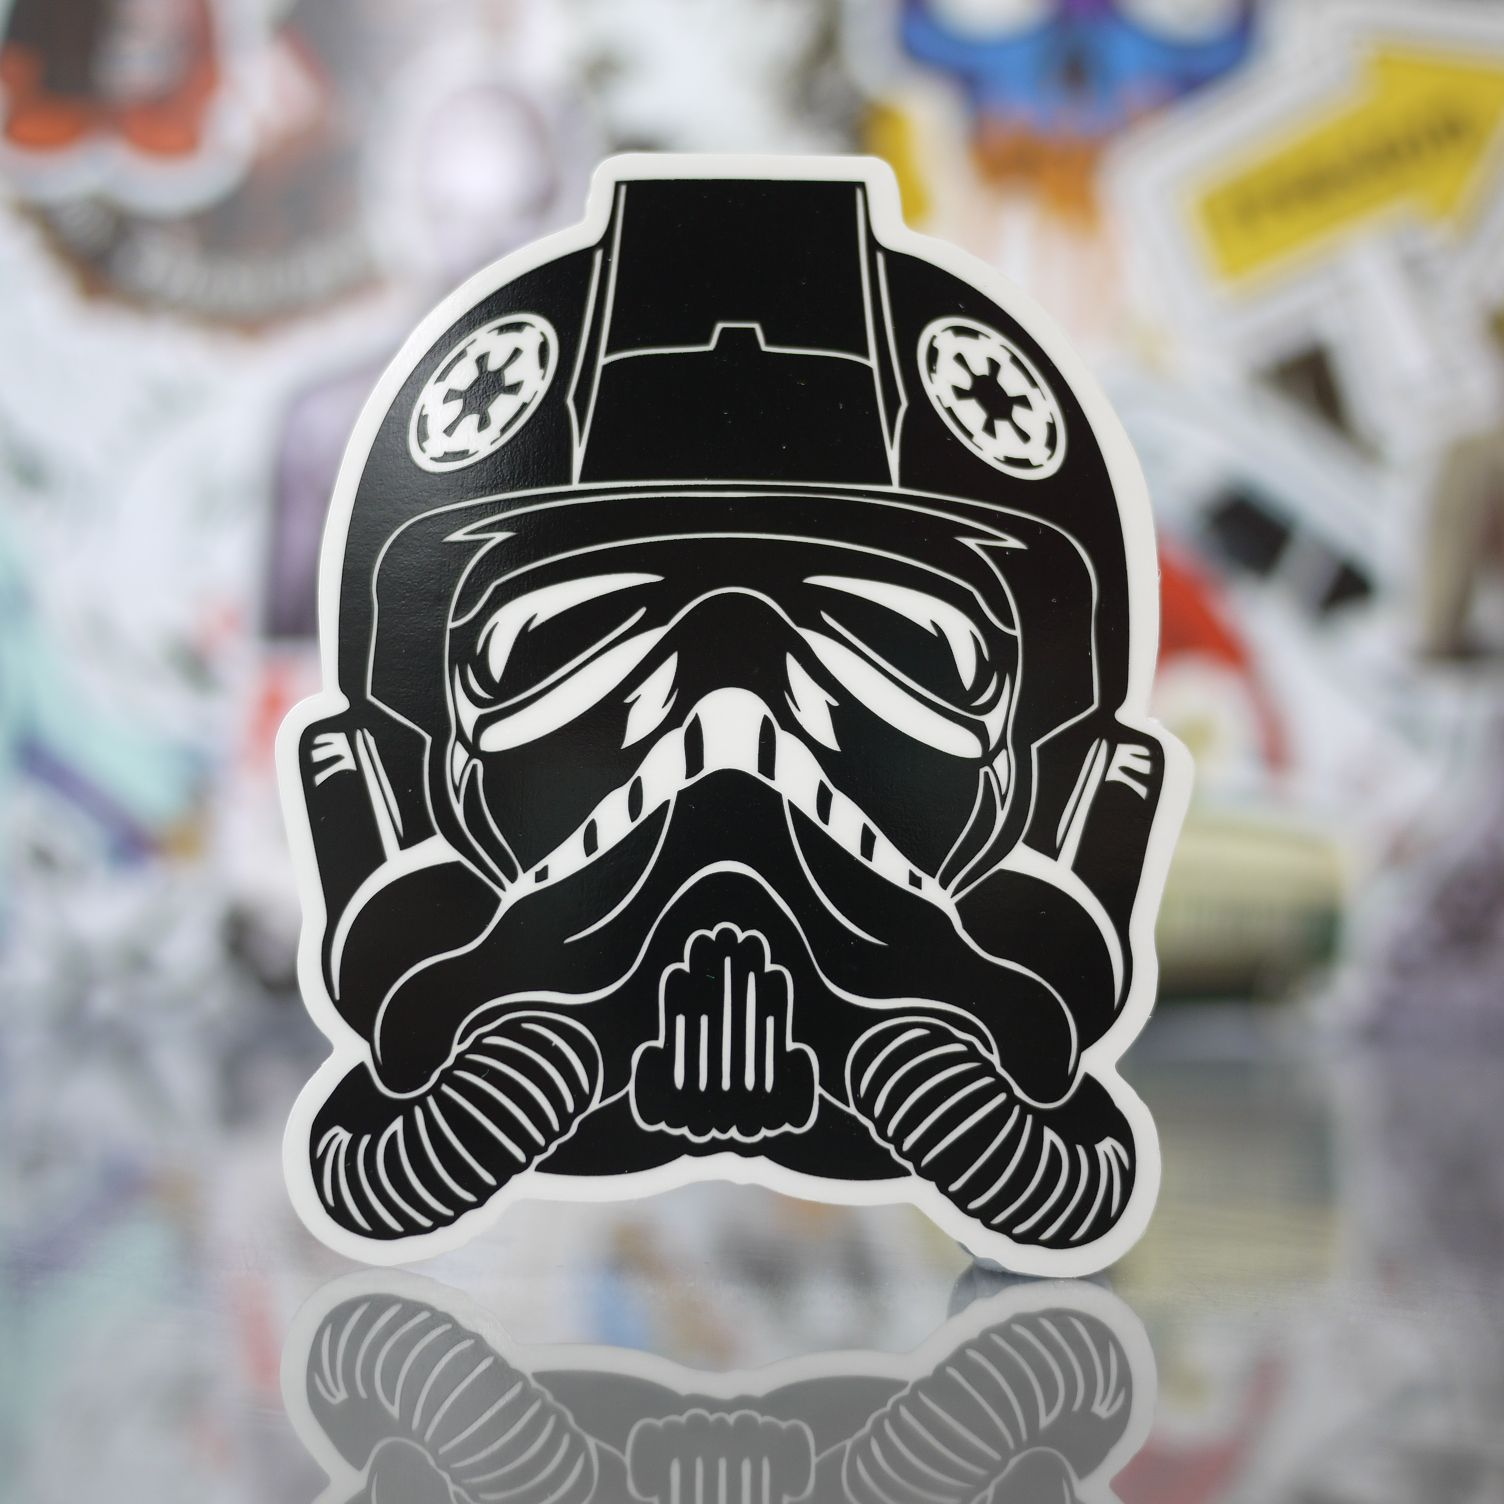 Star wars tie fighter pilot helmet sticker